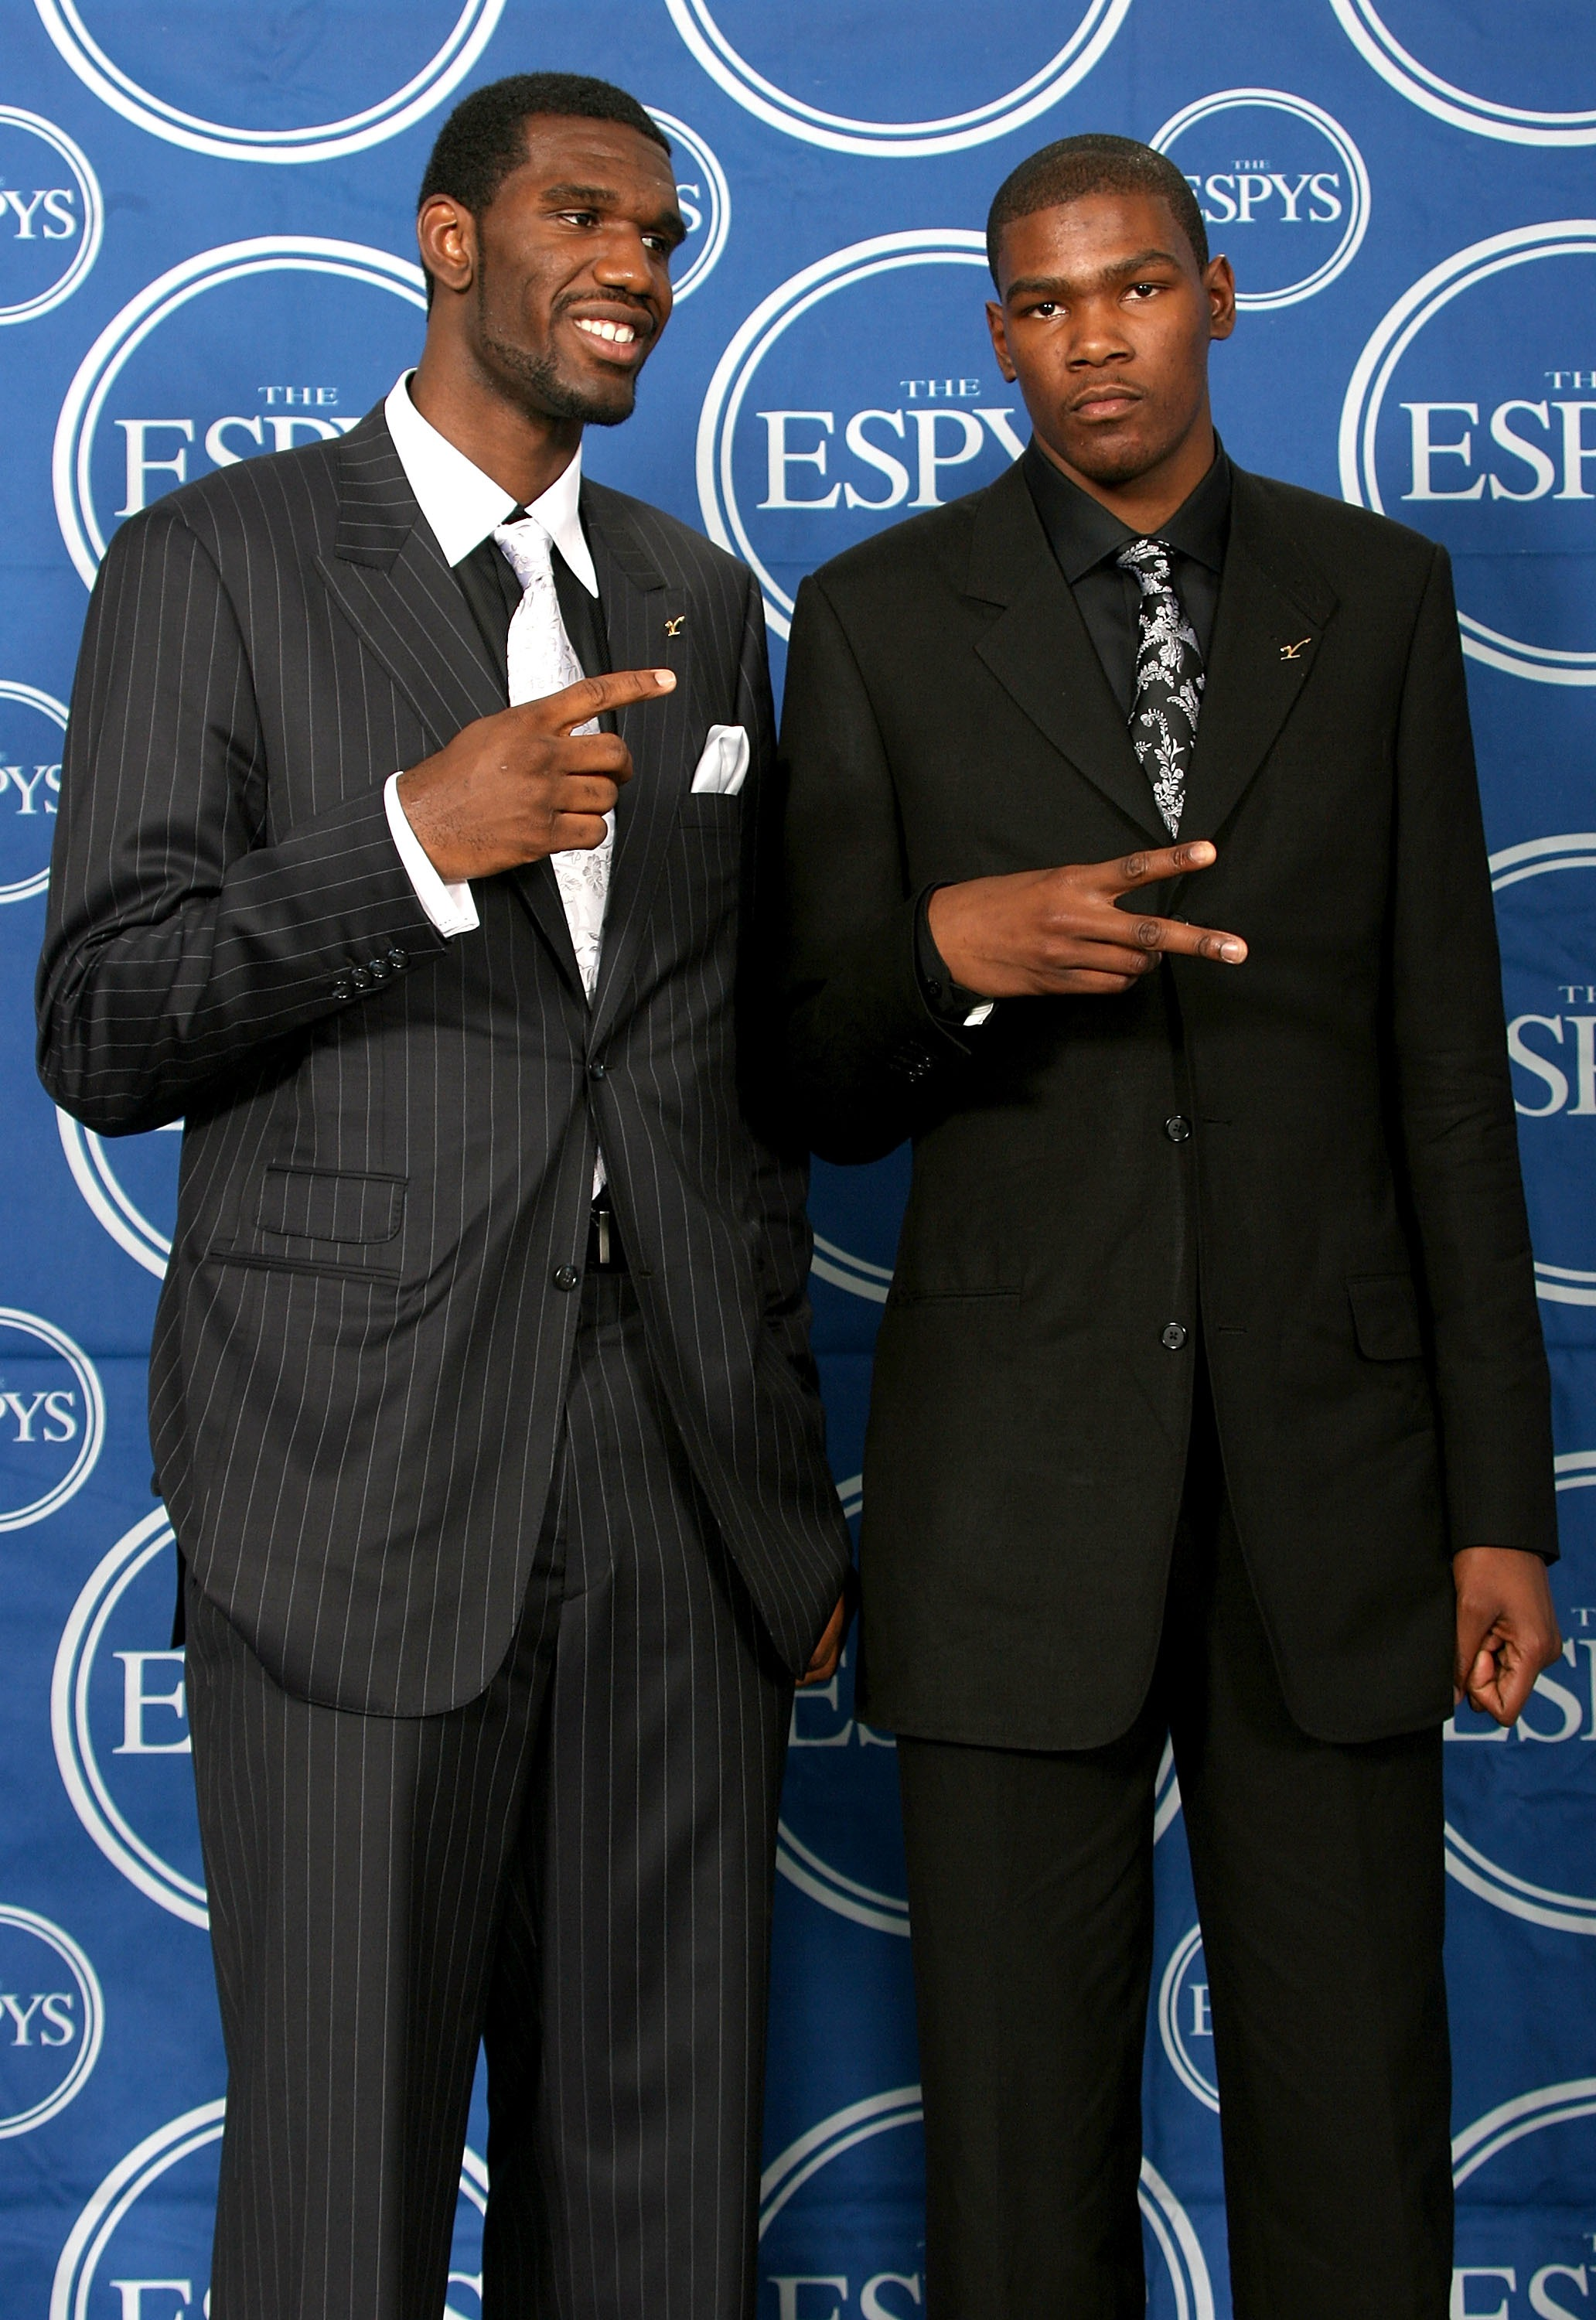 HOLLYWOOD - JULY 11:  NBA players Greg Oden  (L) and Kevin Durant pose for photos in the press room during the 2007 ESPY Awards at the Kodak Theatre on July 11, 2007 in Hollywood, California.  (Photo by Frederick M. Brown/Getty Images)